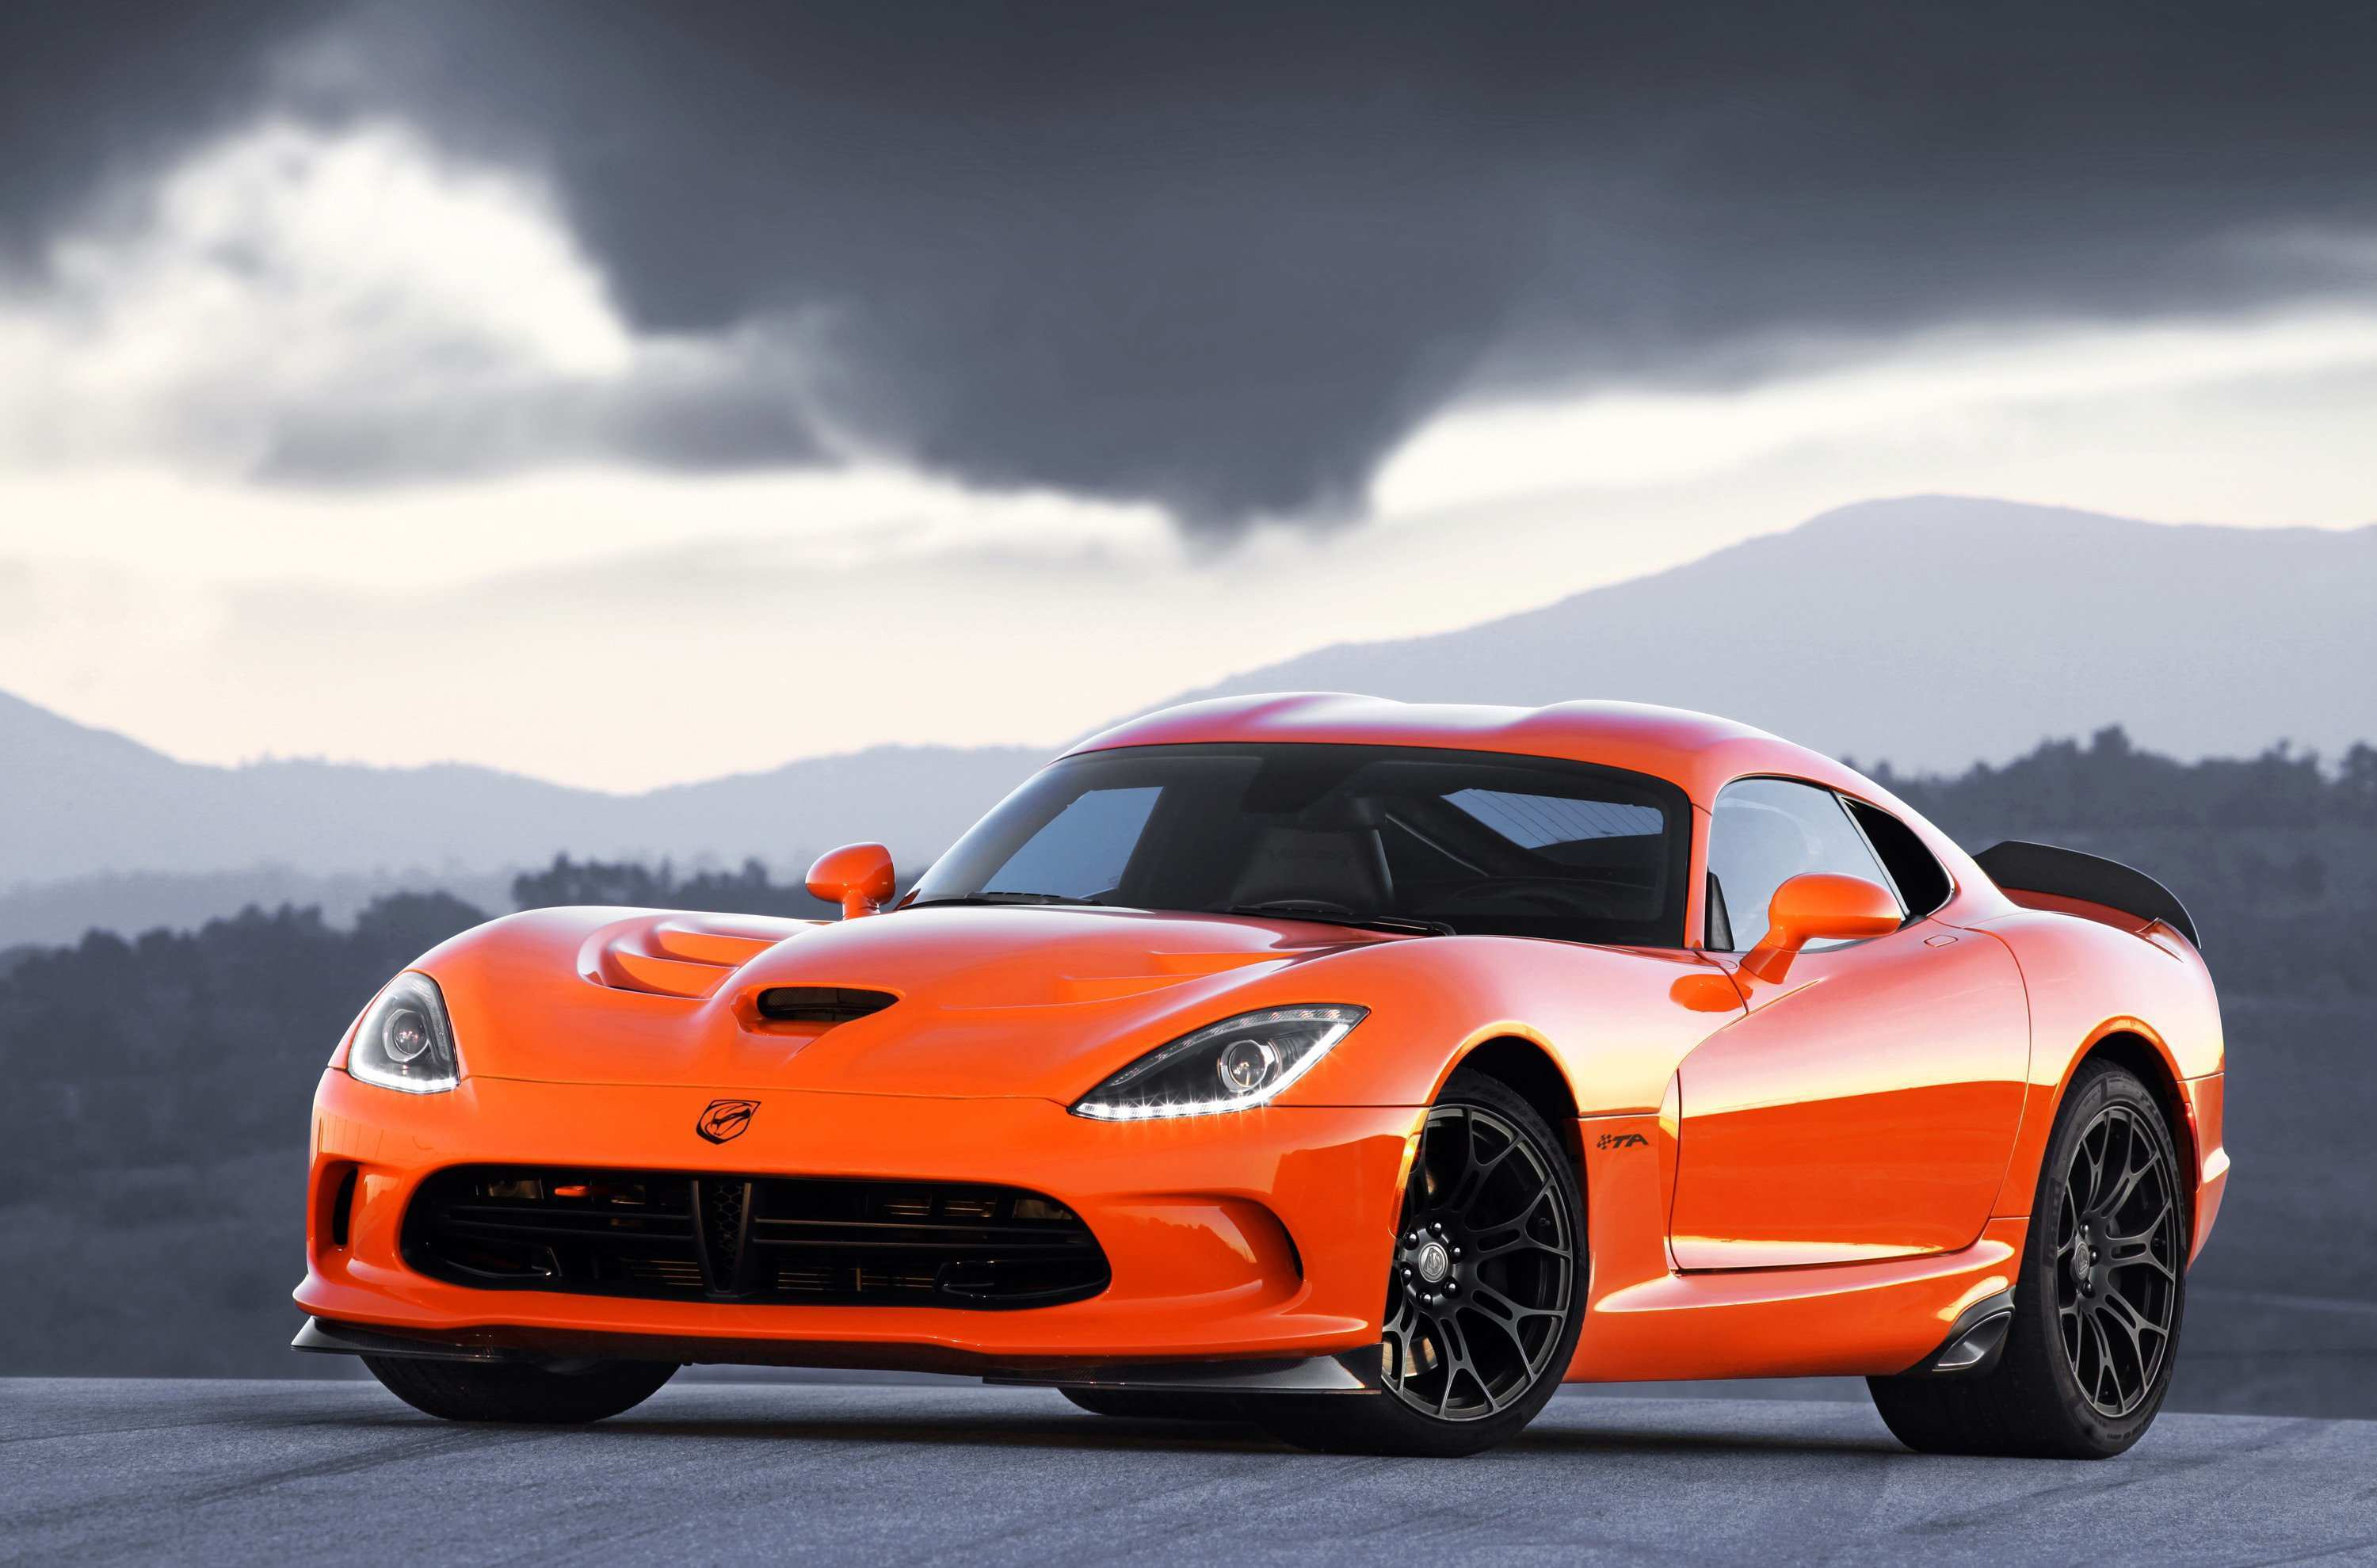 69 Gallery of 2020 Dodge Viper Price with 2020 Dodge Viper